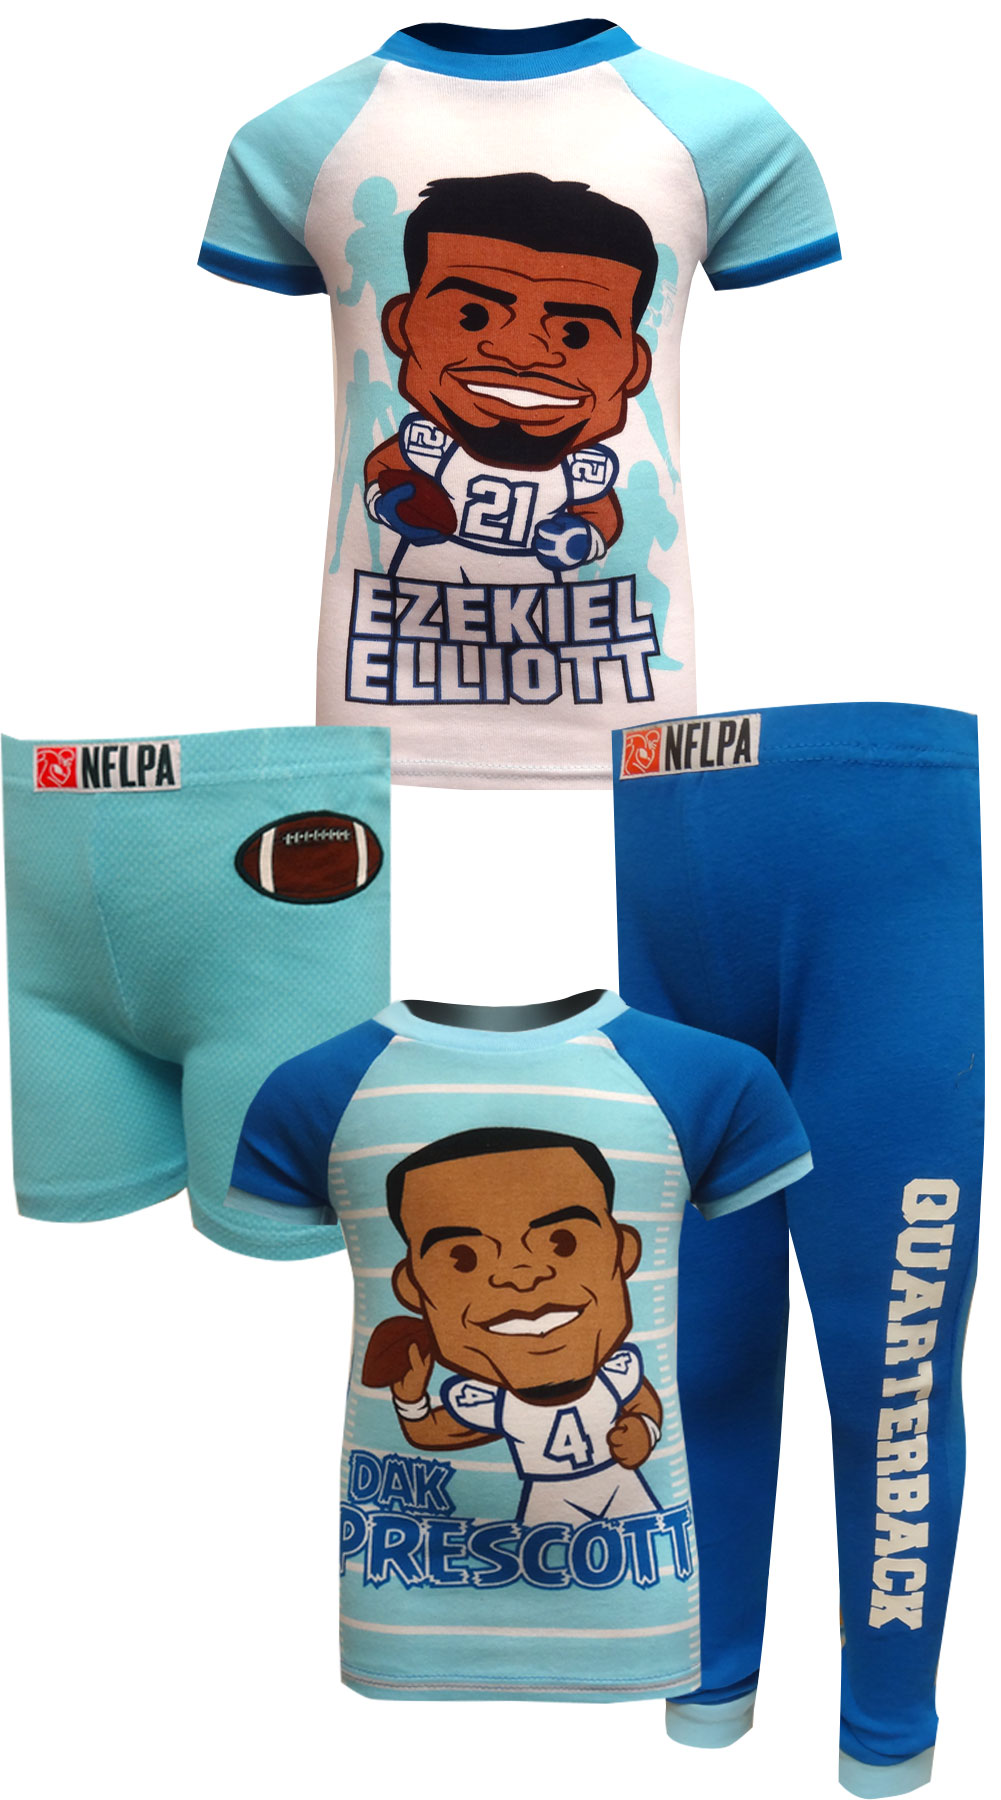 Image of Dallas Cowboys Ezekiel Elliott and Dak Prescott Pajamas for boys